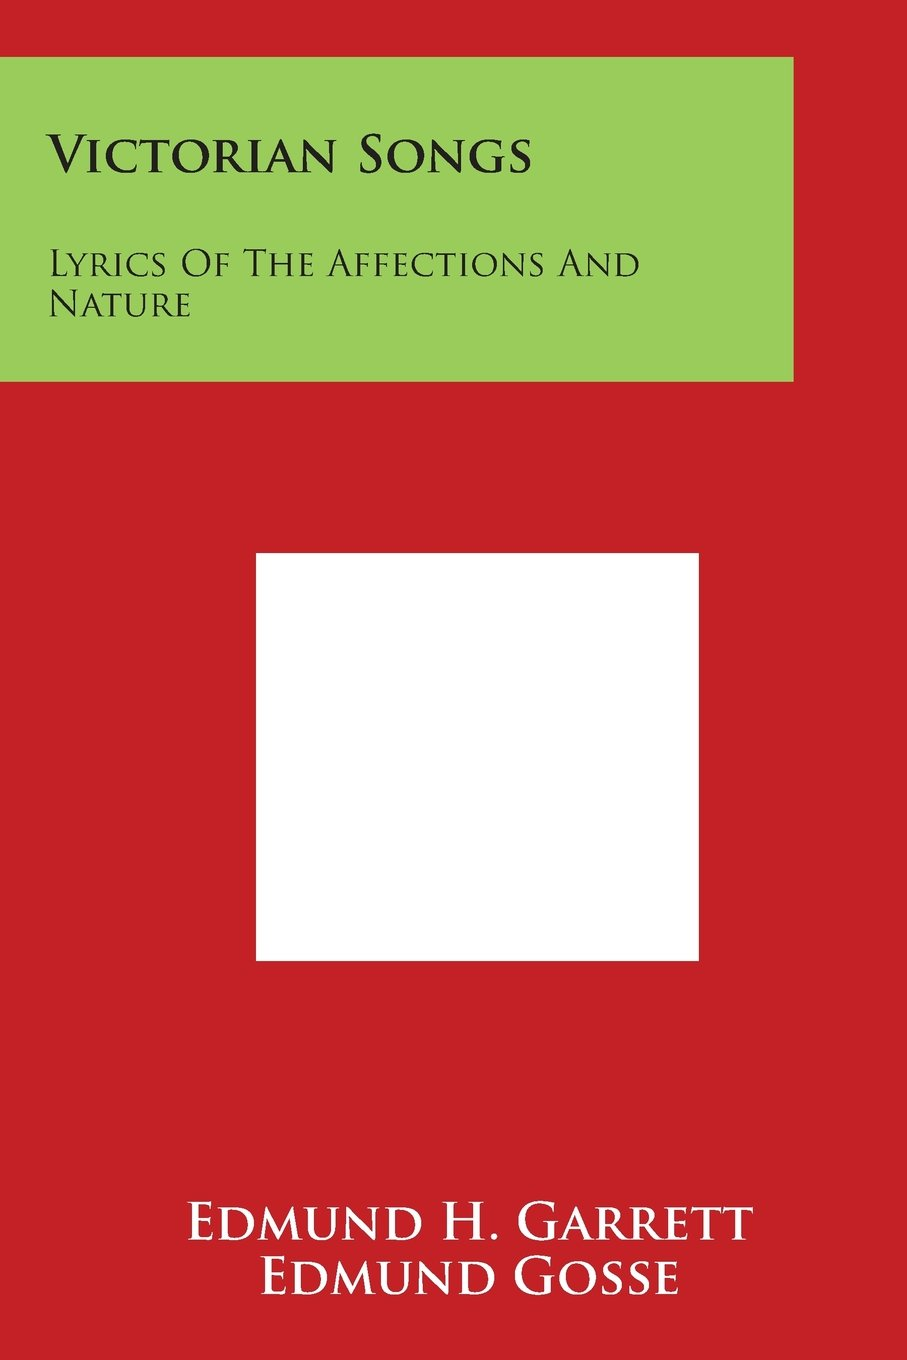 Victorian Songs: Lyrics of the Affections and Nature pdf